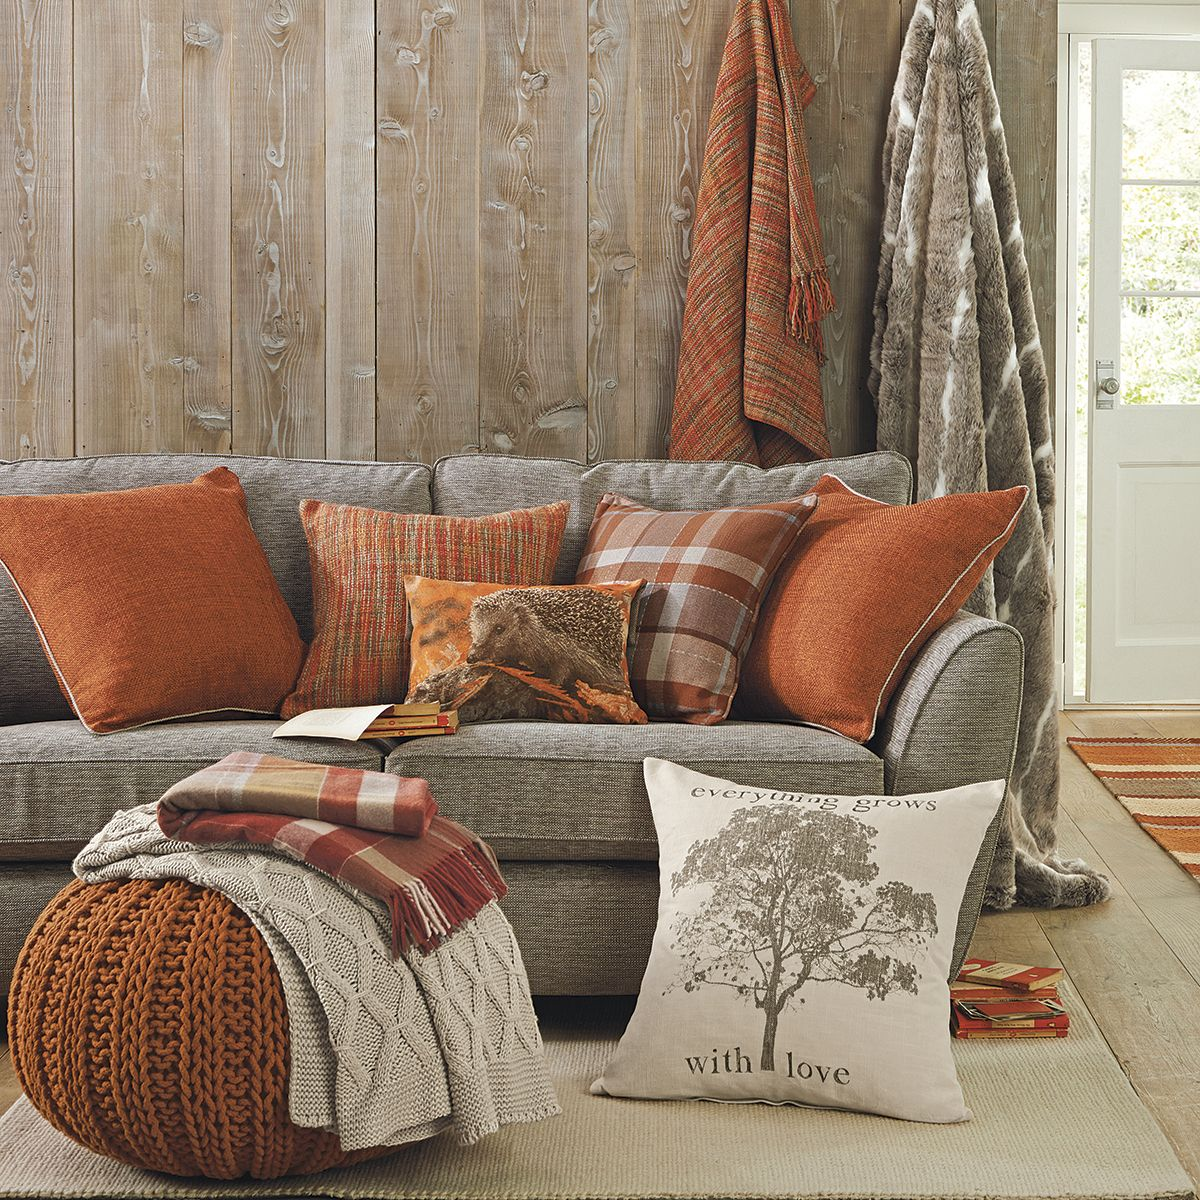 5 Decorating Ideas To Take From Next